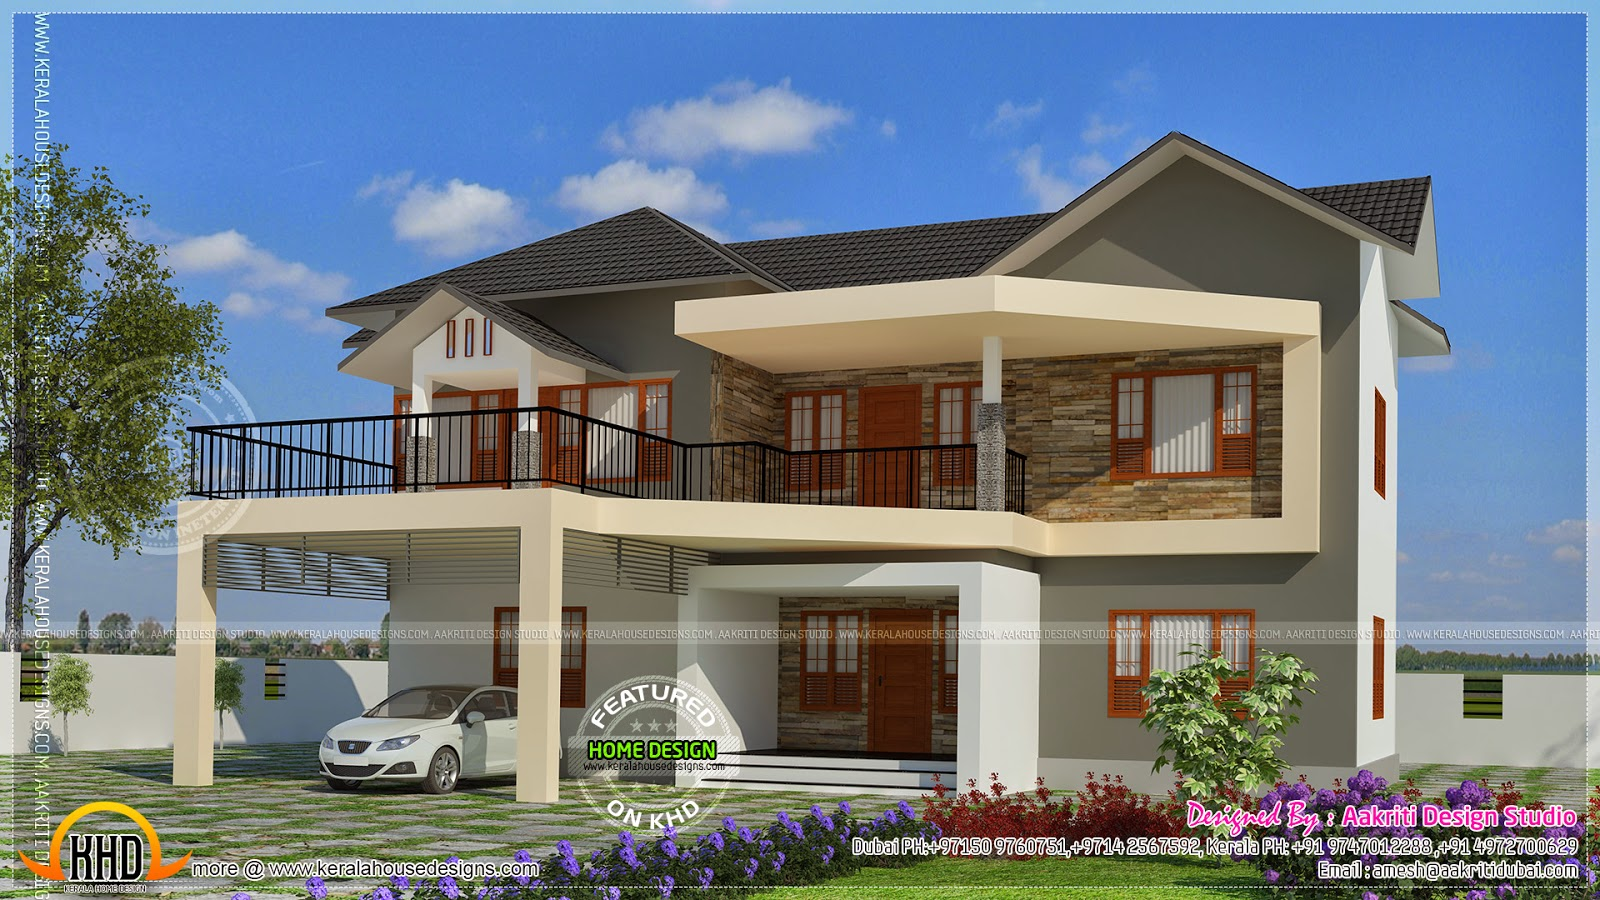 Elegant villa exterior kerala home design and floor plans for Small villa plans in kerala